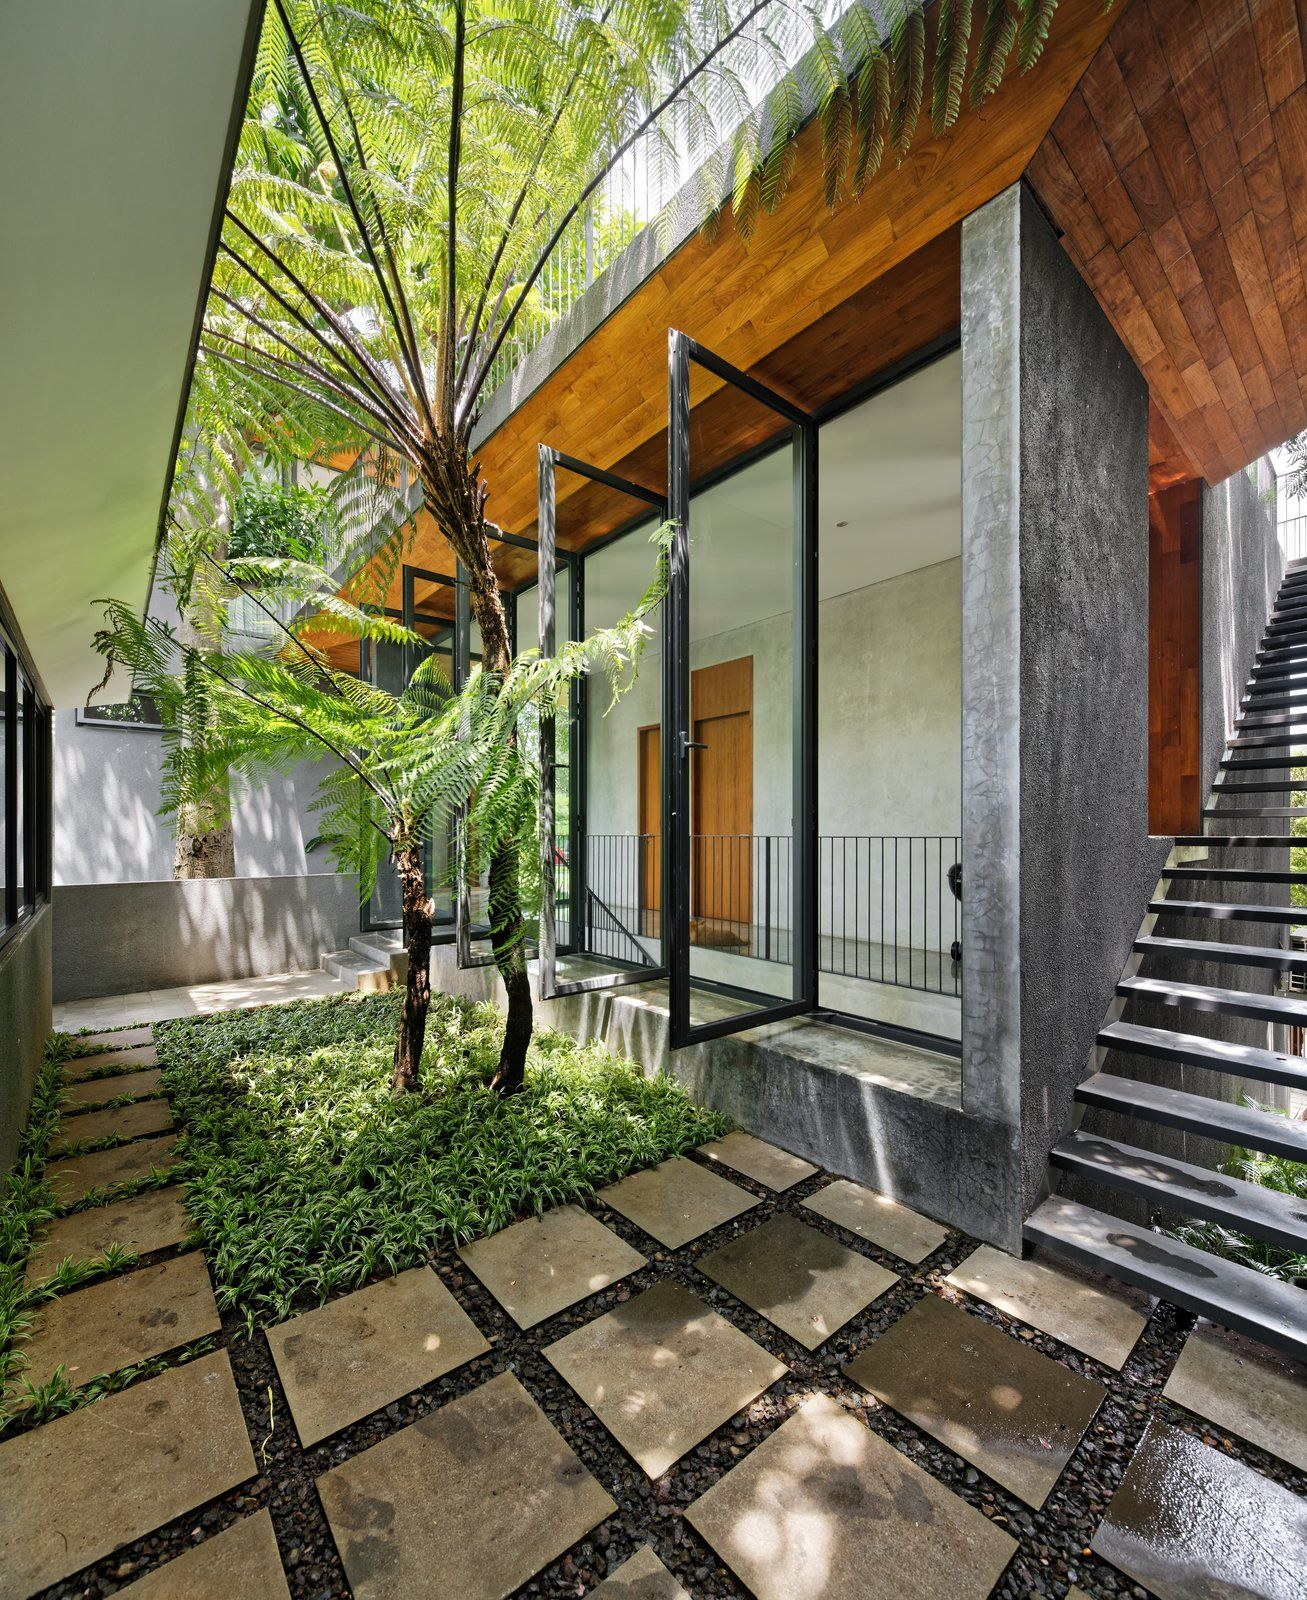 Contemporary Tropical House Tanga House: House Of Inside And Outside